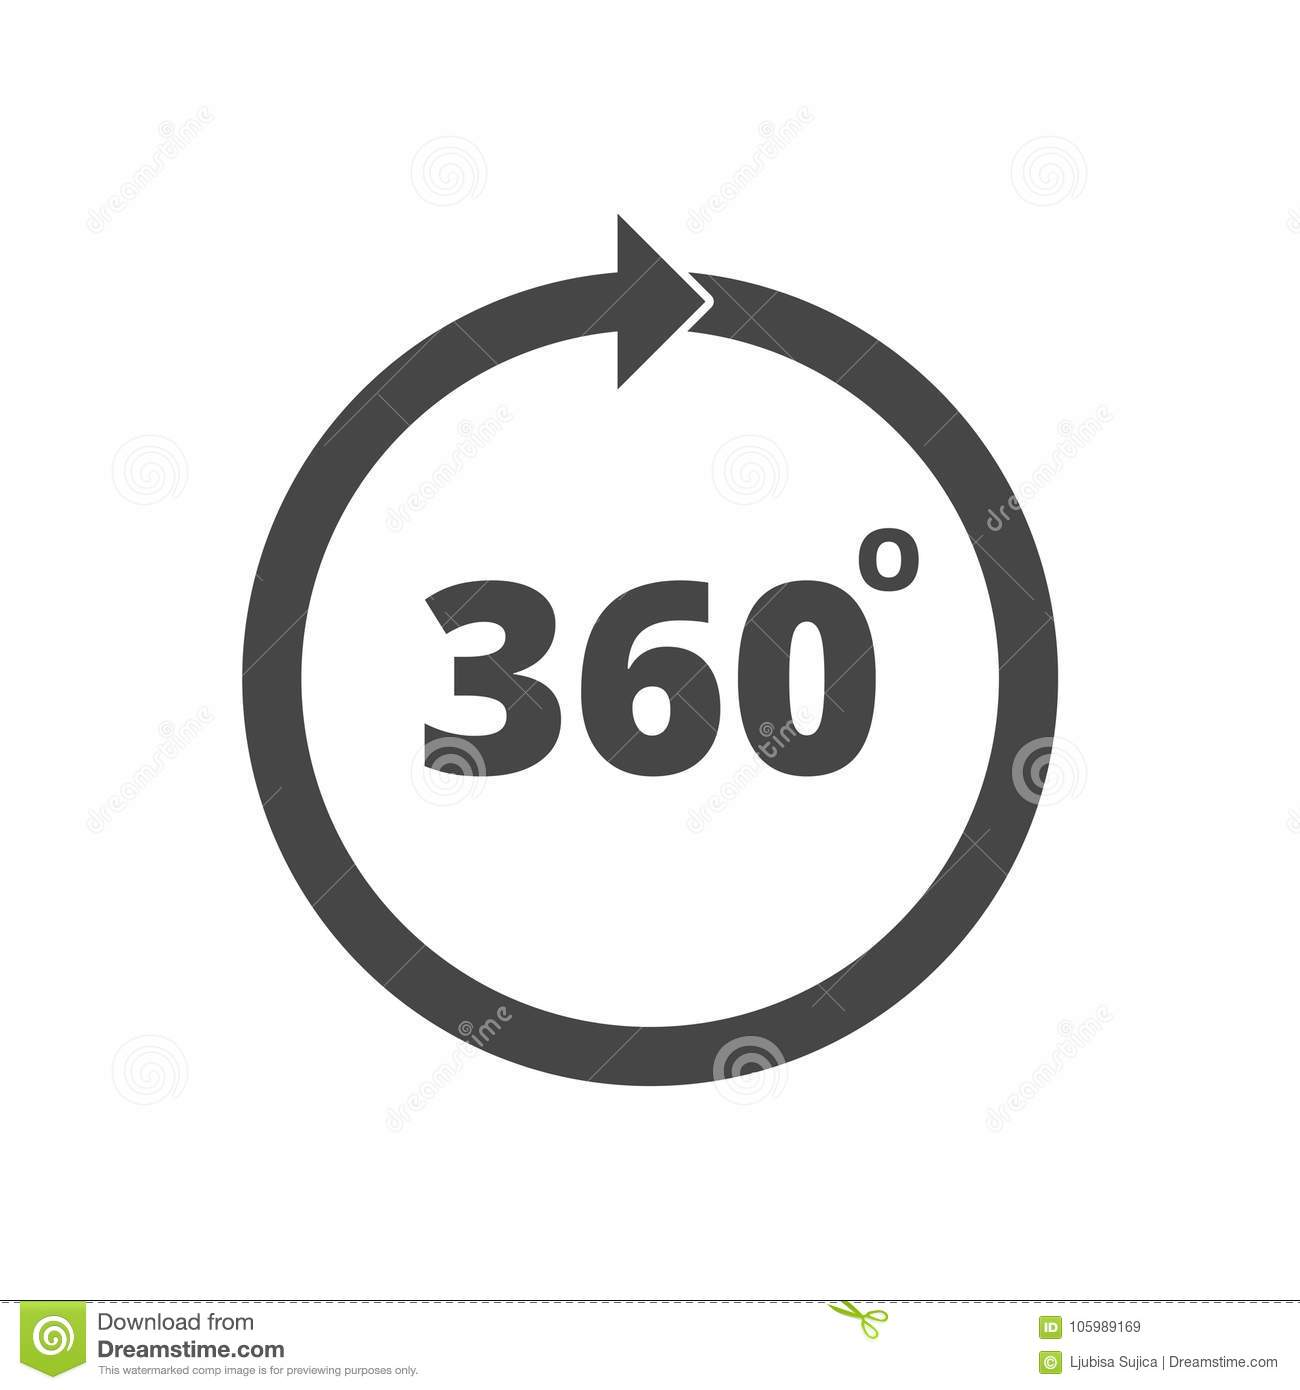 Angle 360 Degrees Sign Icon Stock Vector Illustration Of Math